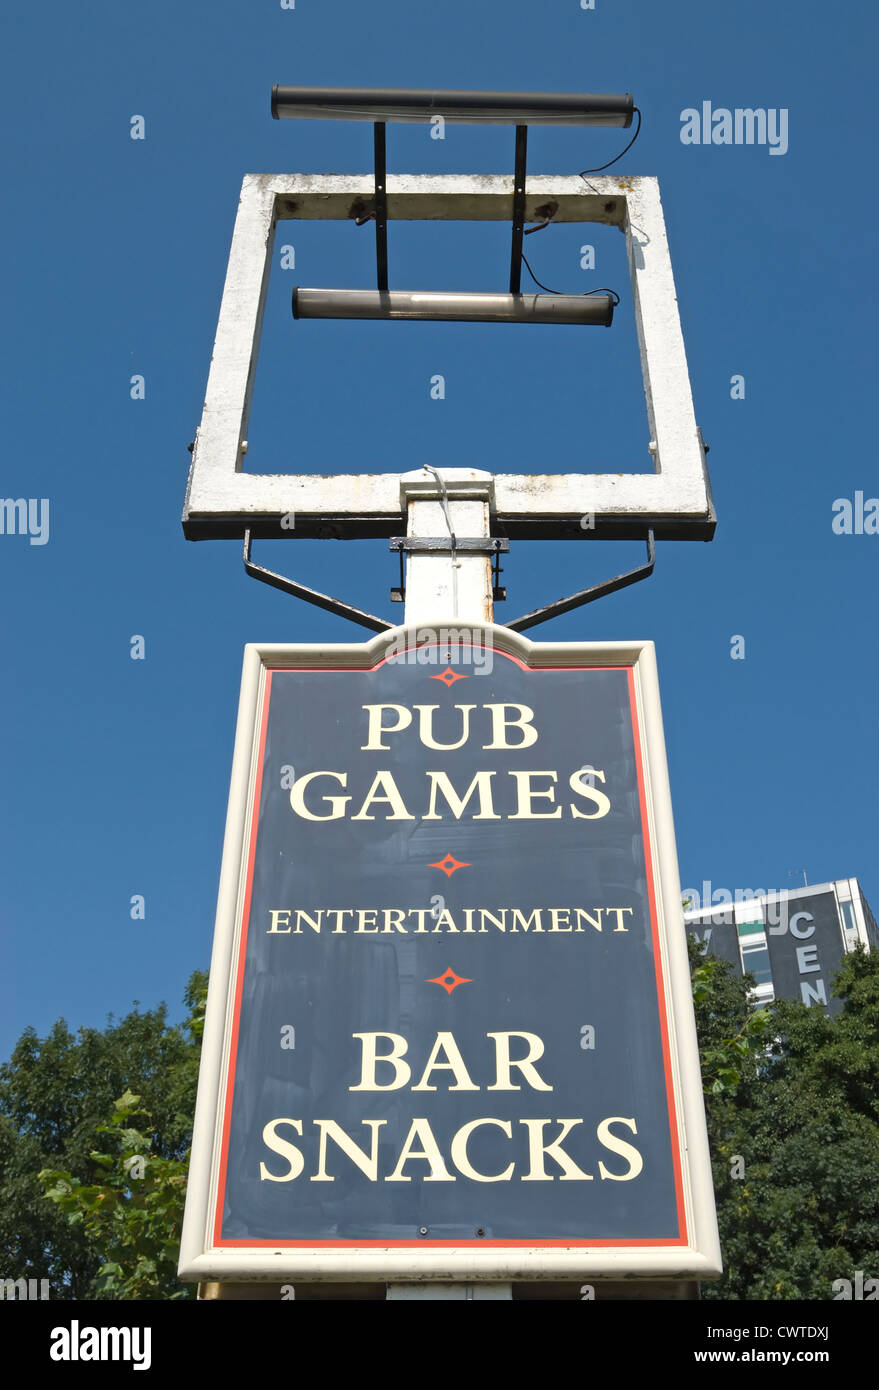 empty pub sign frame outside a closed pub with board below advertising pub games and bar snacks, hounslow, middlesex, - Stock Image